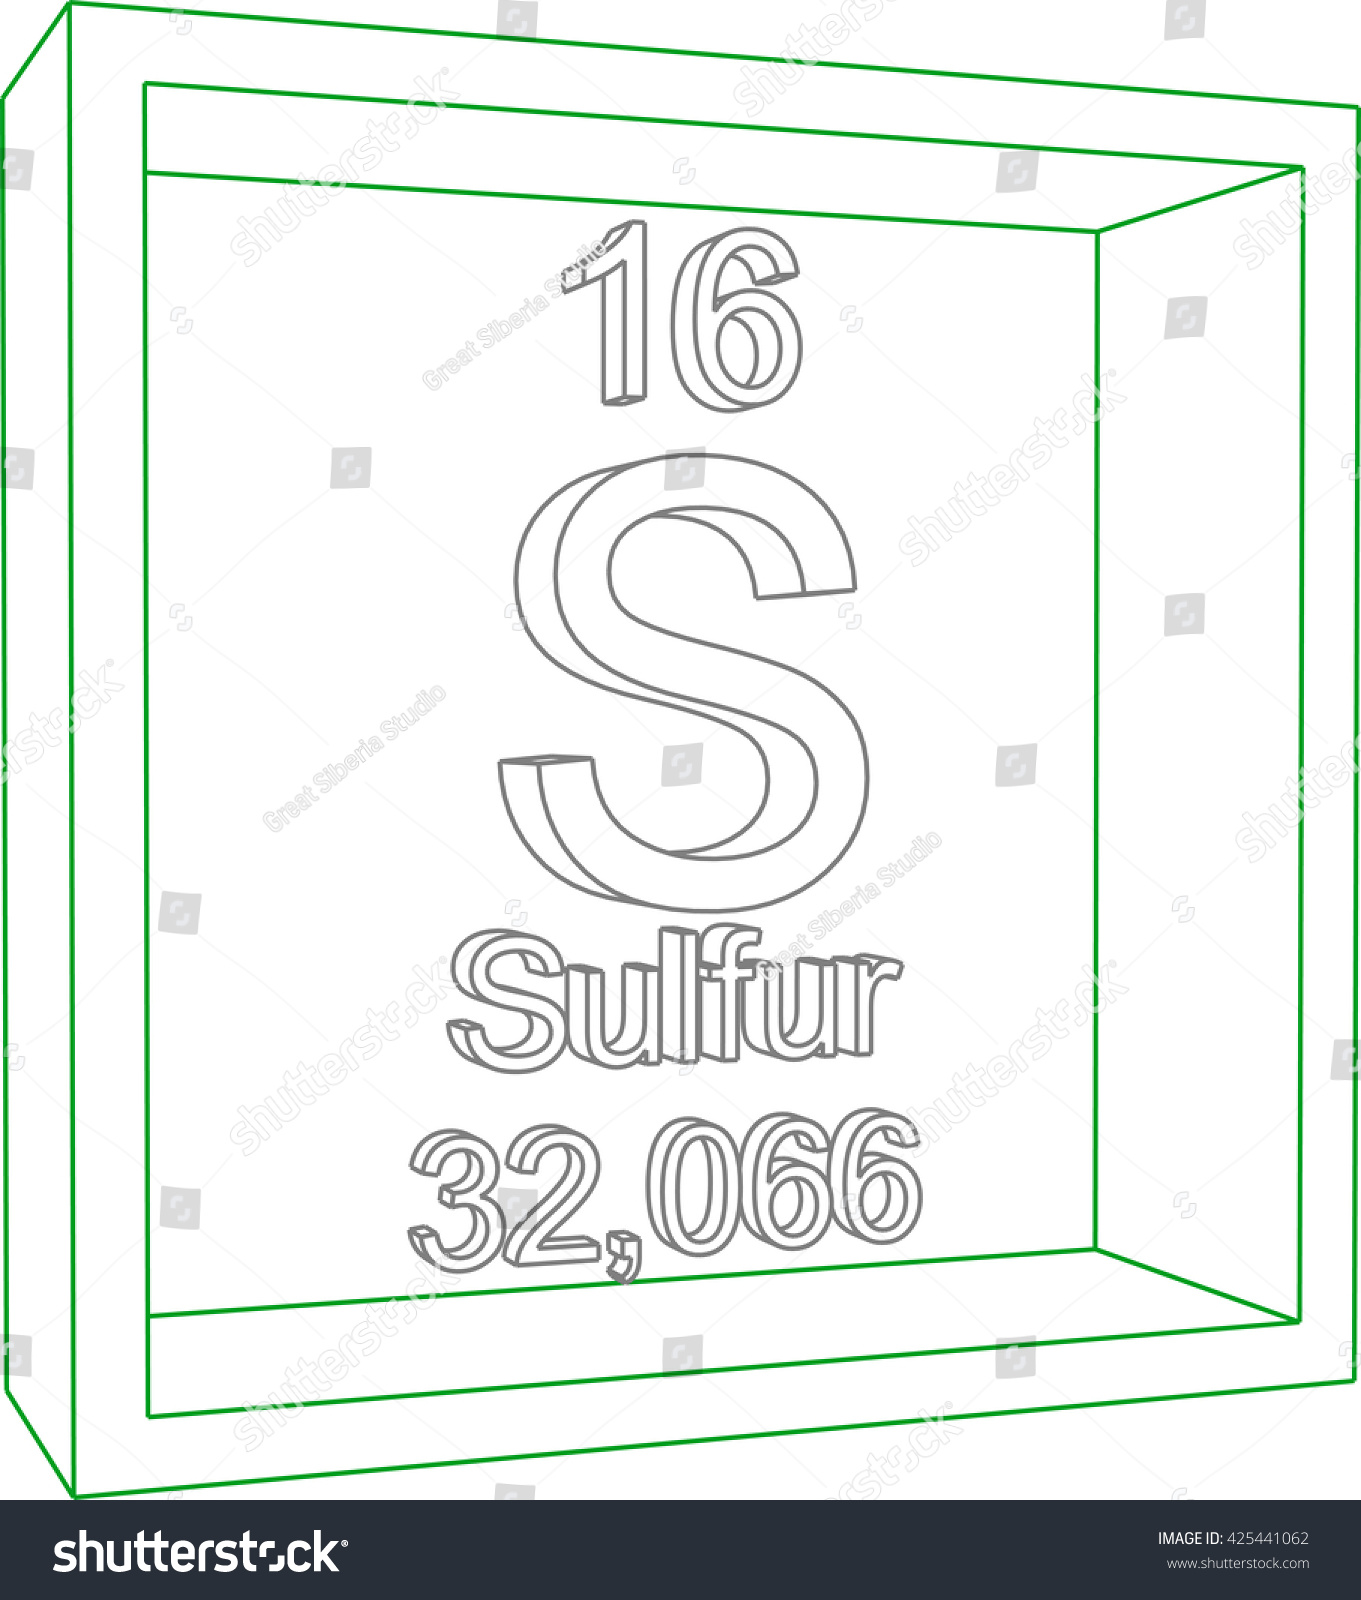 Periodic table sulfur image collections periodic table images sulfur periodic table gallery periodic table images periodic table sulphur gallery periodic table images chemical elements gamestrikefo Image collections